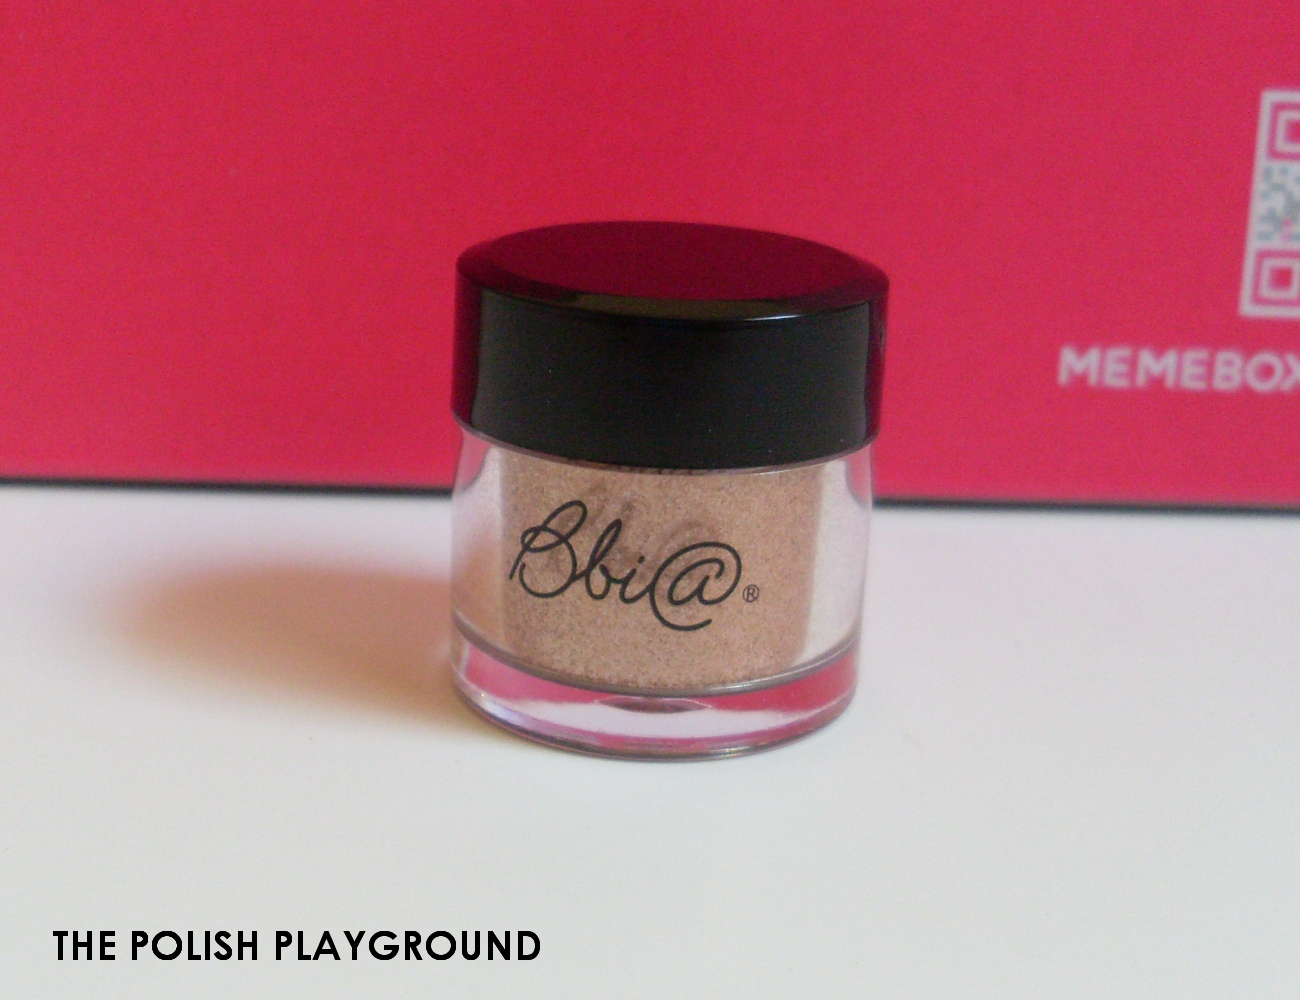 Memebox Special #17 K-Style Cosmetics Unboxing - Bbia Pigment in 03 Sweet